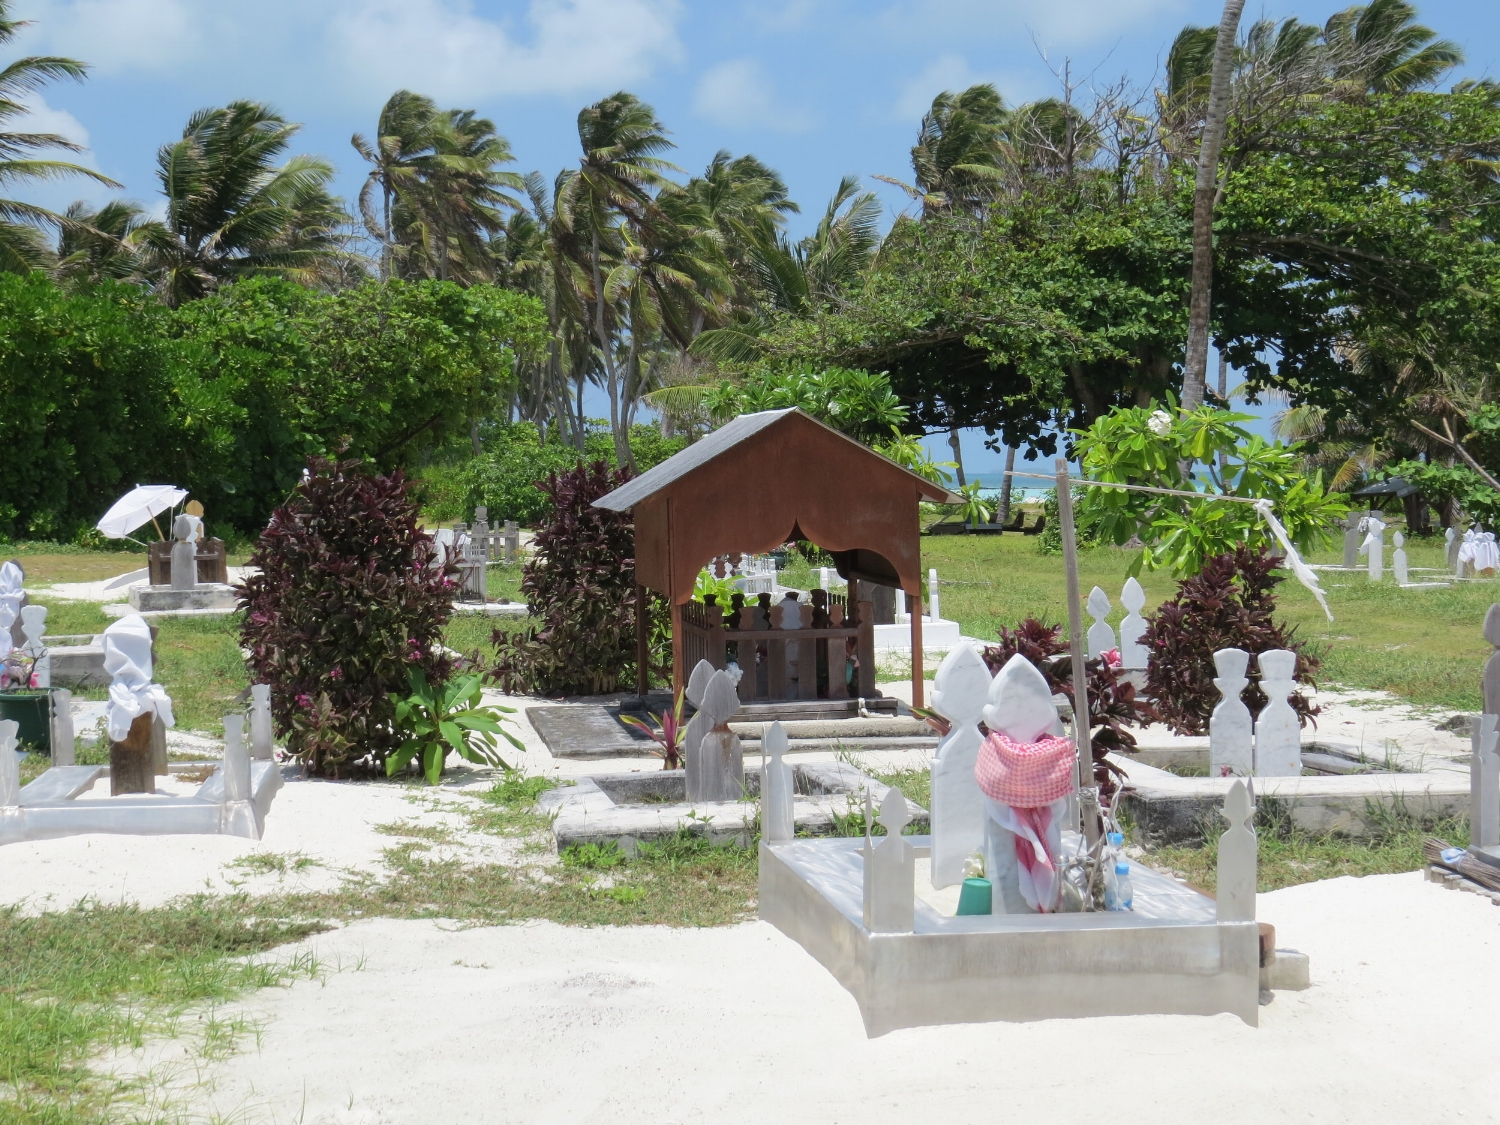 Cocos Malay graves